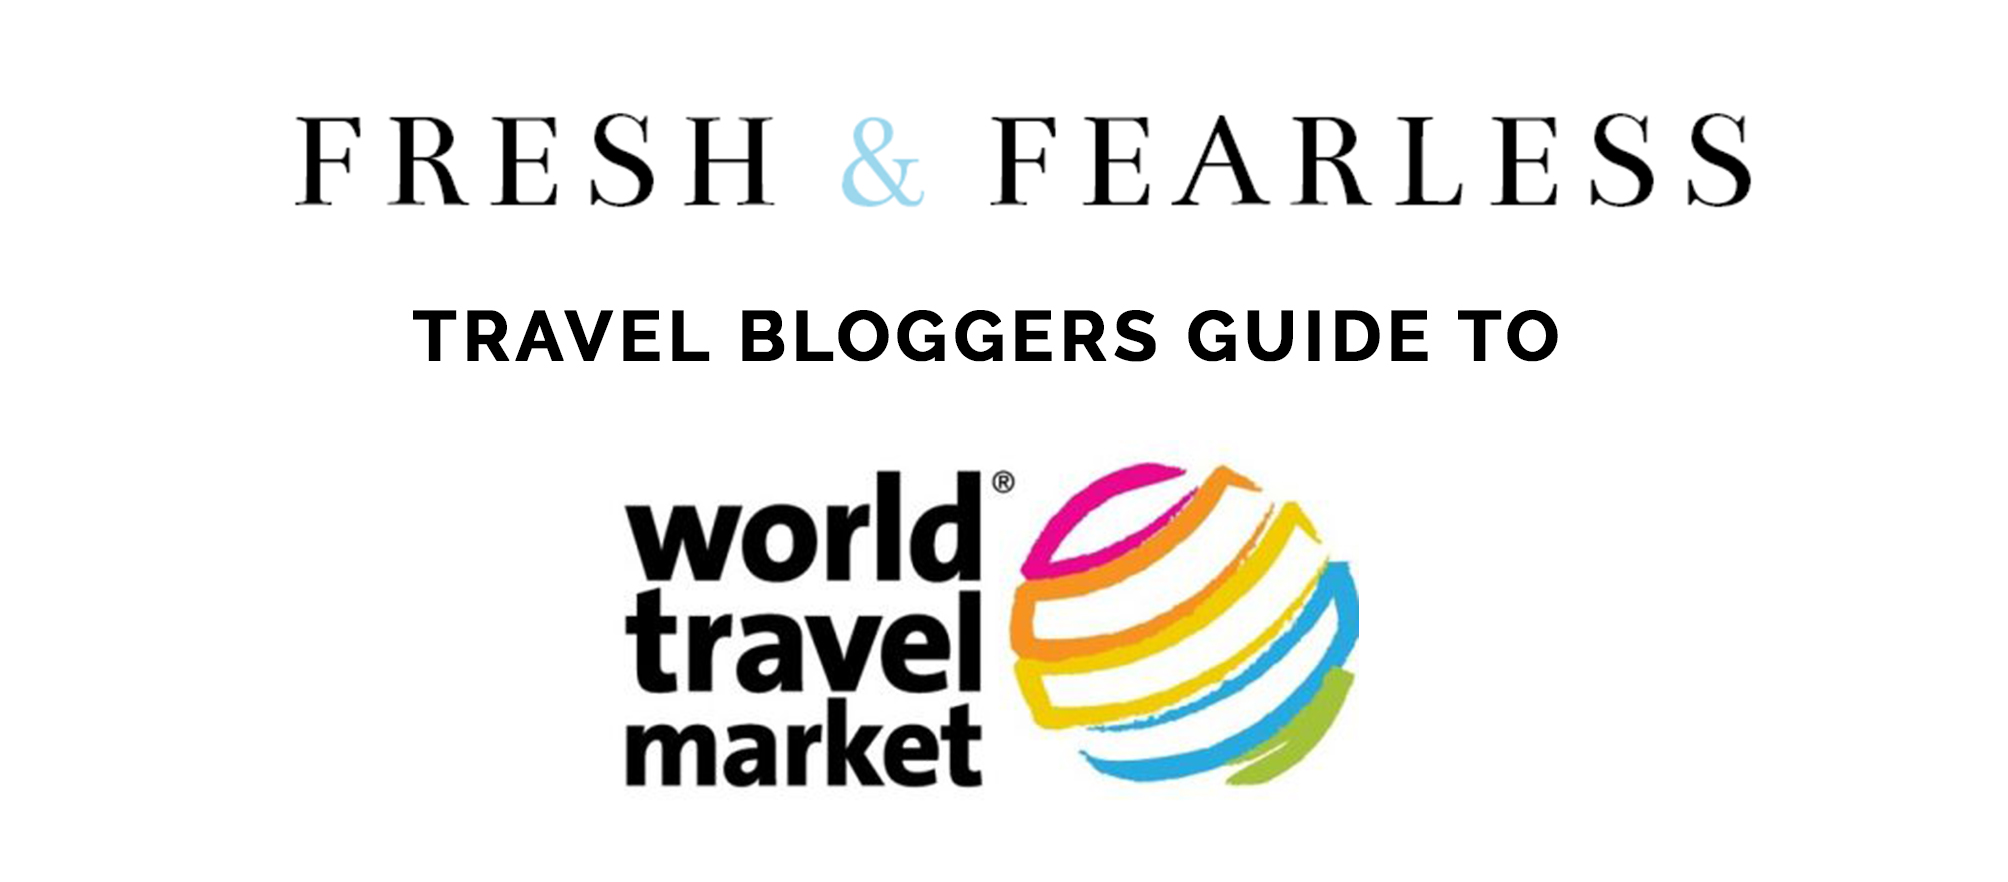 World Travel Market Guide - Fresh And Fearless